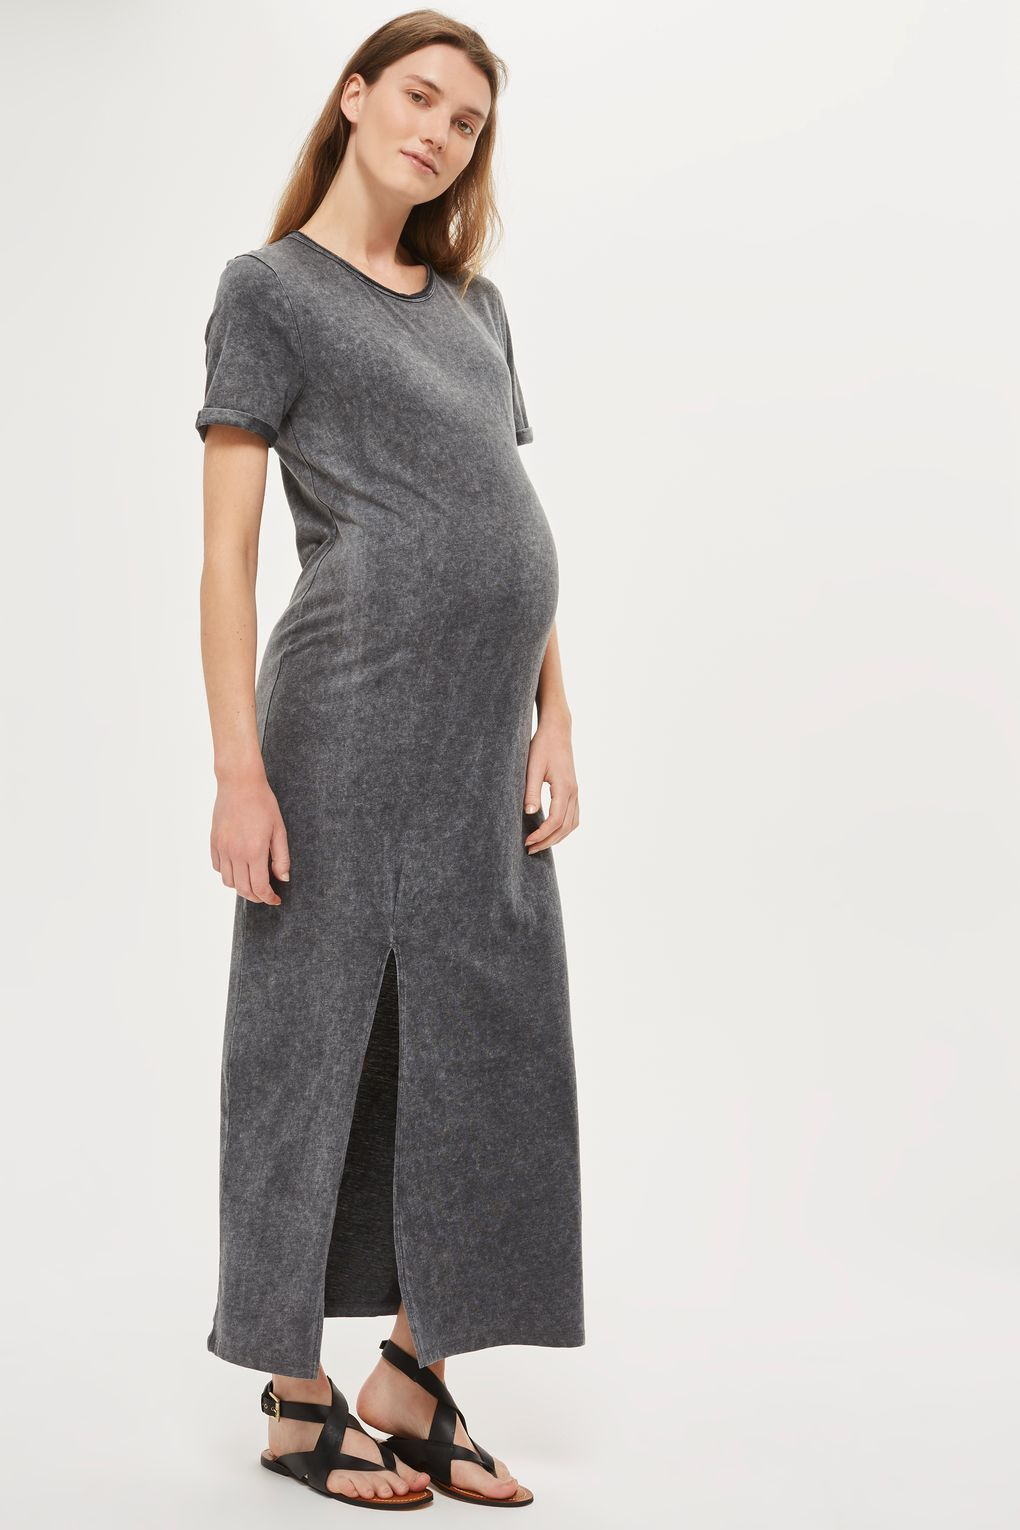 Maternity washed split front maxi dress maternity clothing maternity washed split front maxi dress maternity clothing topshop usa ombrellifo Image collections